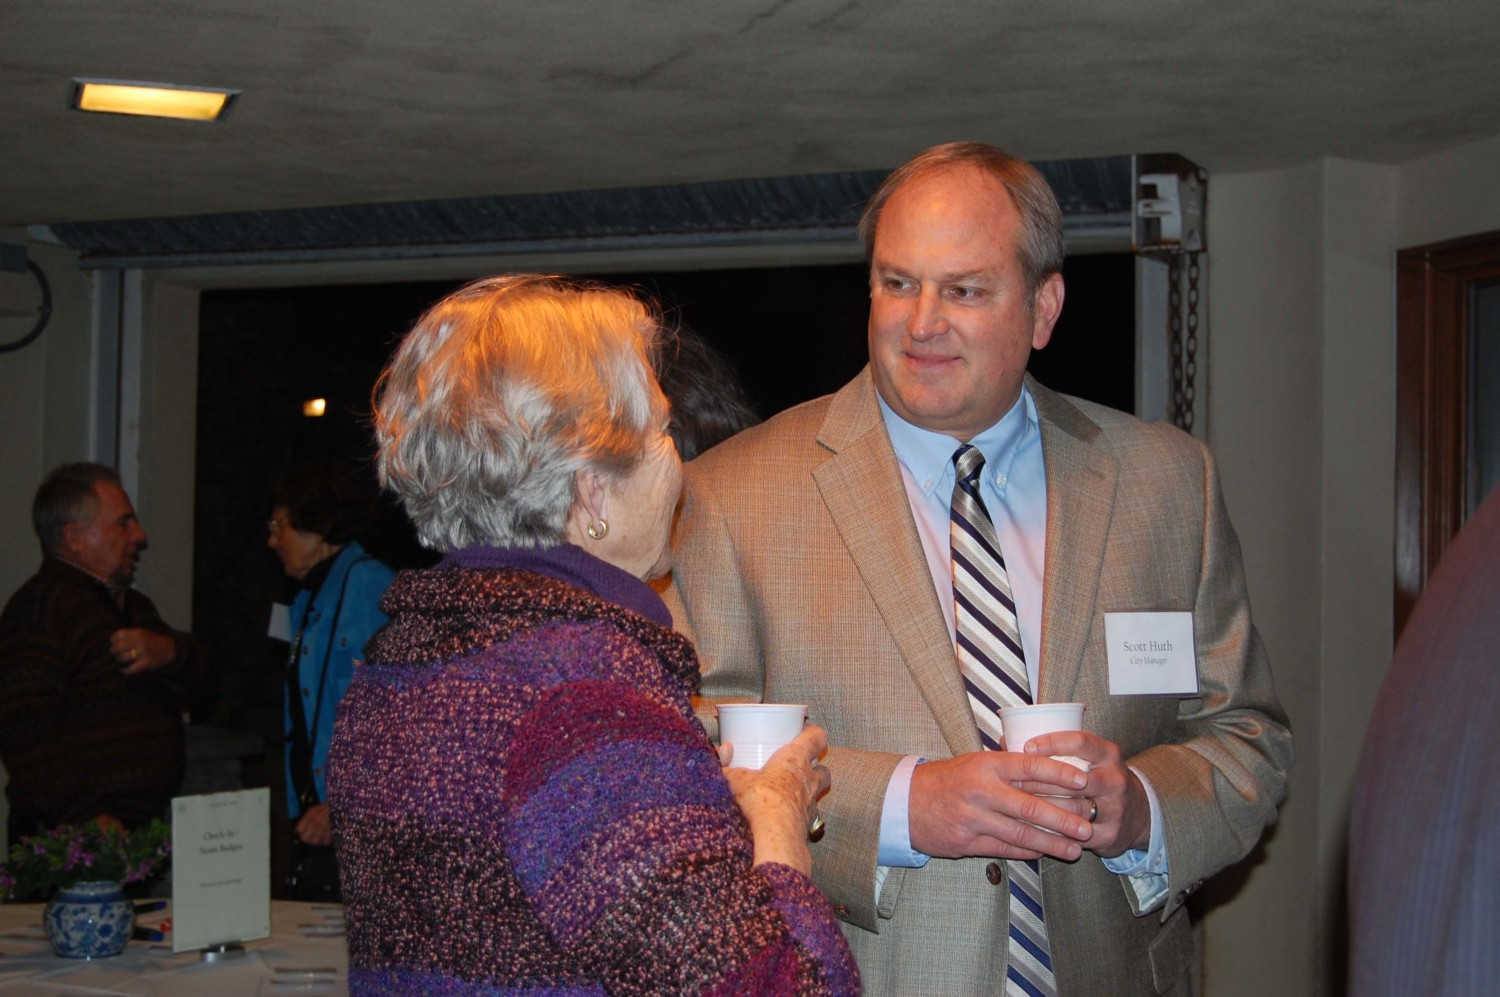 Del Mar city manager Scott Huth talks with a lady in a purple sweater